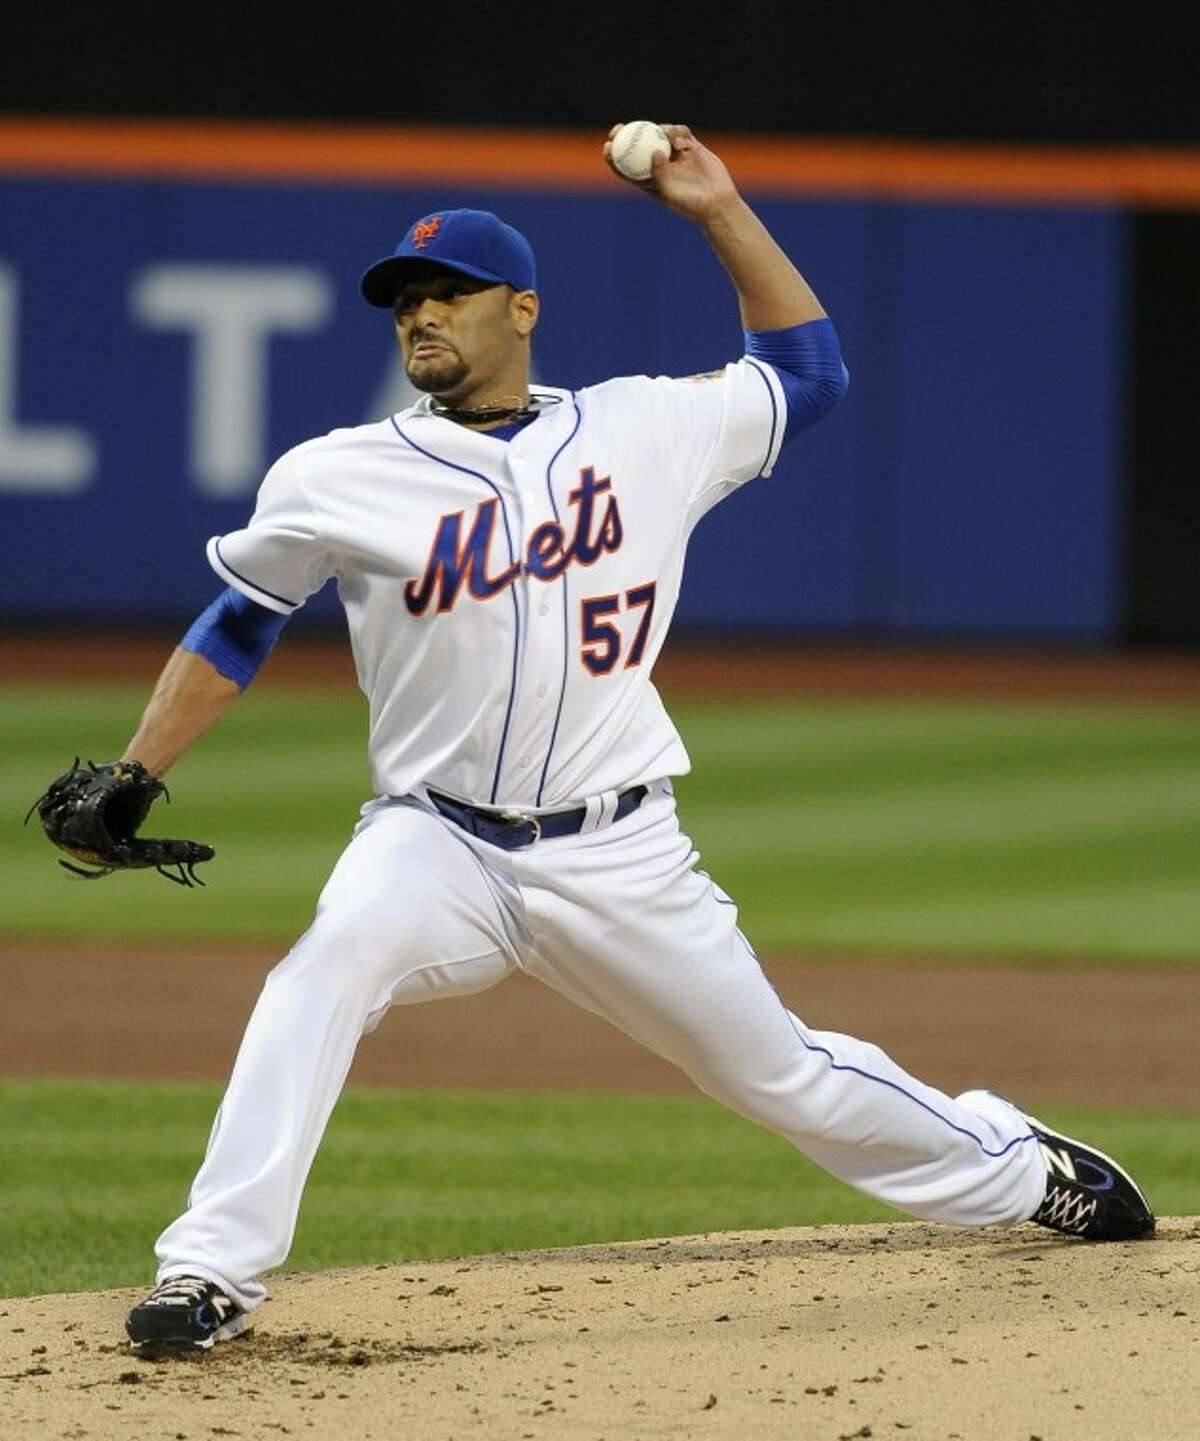 New York Mets starting pitcher Johan Santana (57) throws against the St. Louis Cardinals in the second inning of a baseball game on Friday, June 1, 2012, at Citi Field in New York. (AP Photo/Kathy Kmonicek)